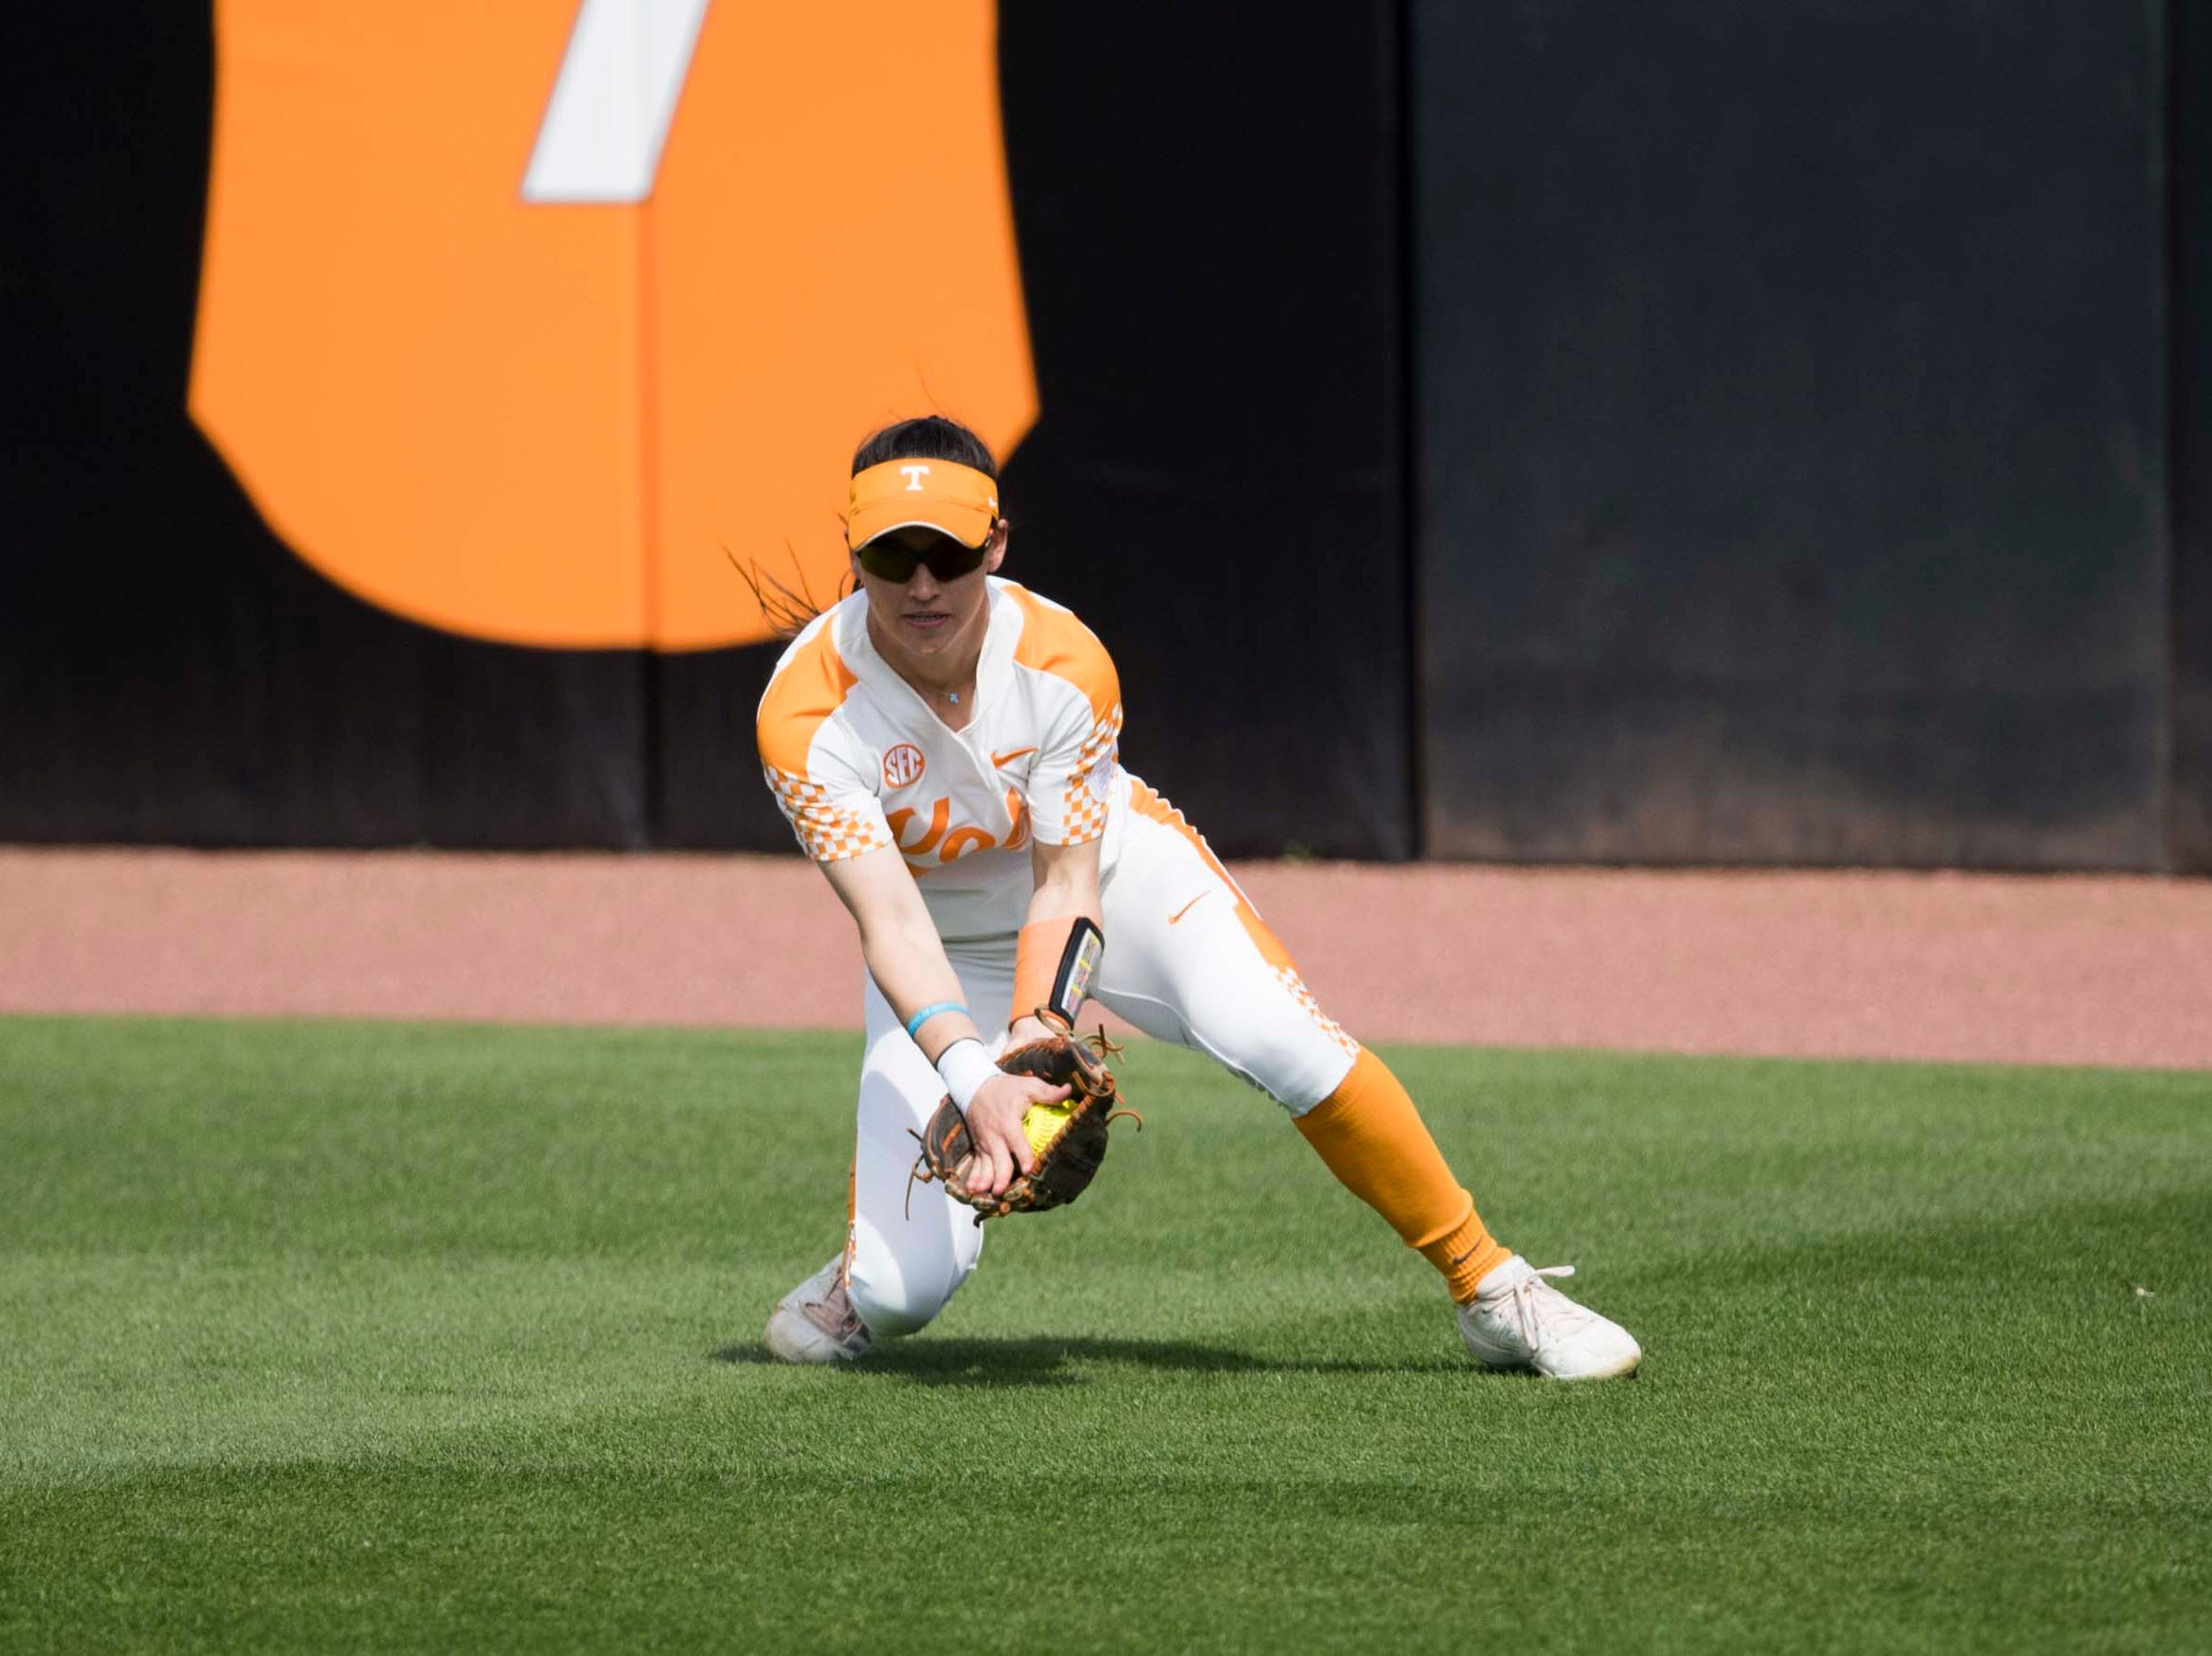 Tennessee outfielder Jenna Holcomb (2) fields a ground ball during a Lady Vols softball game against Arkansas at Sherri Parker Lee stadium on University of Tennessee's campus in Knoxville Sunday, March 24, 2019. The Lady Vols defeated Arkansas.